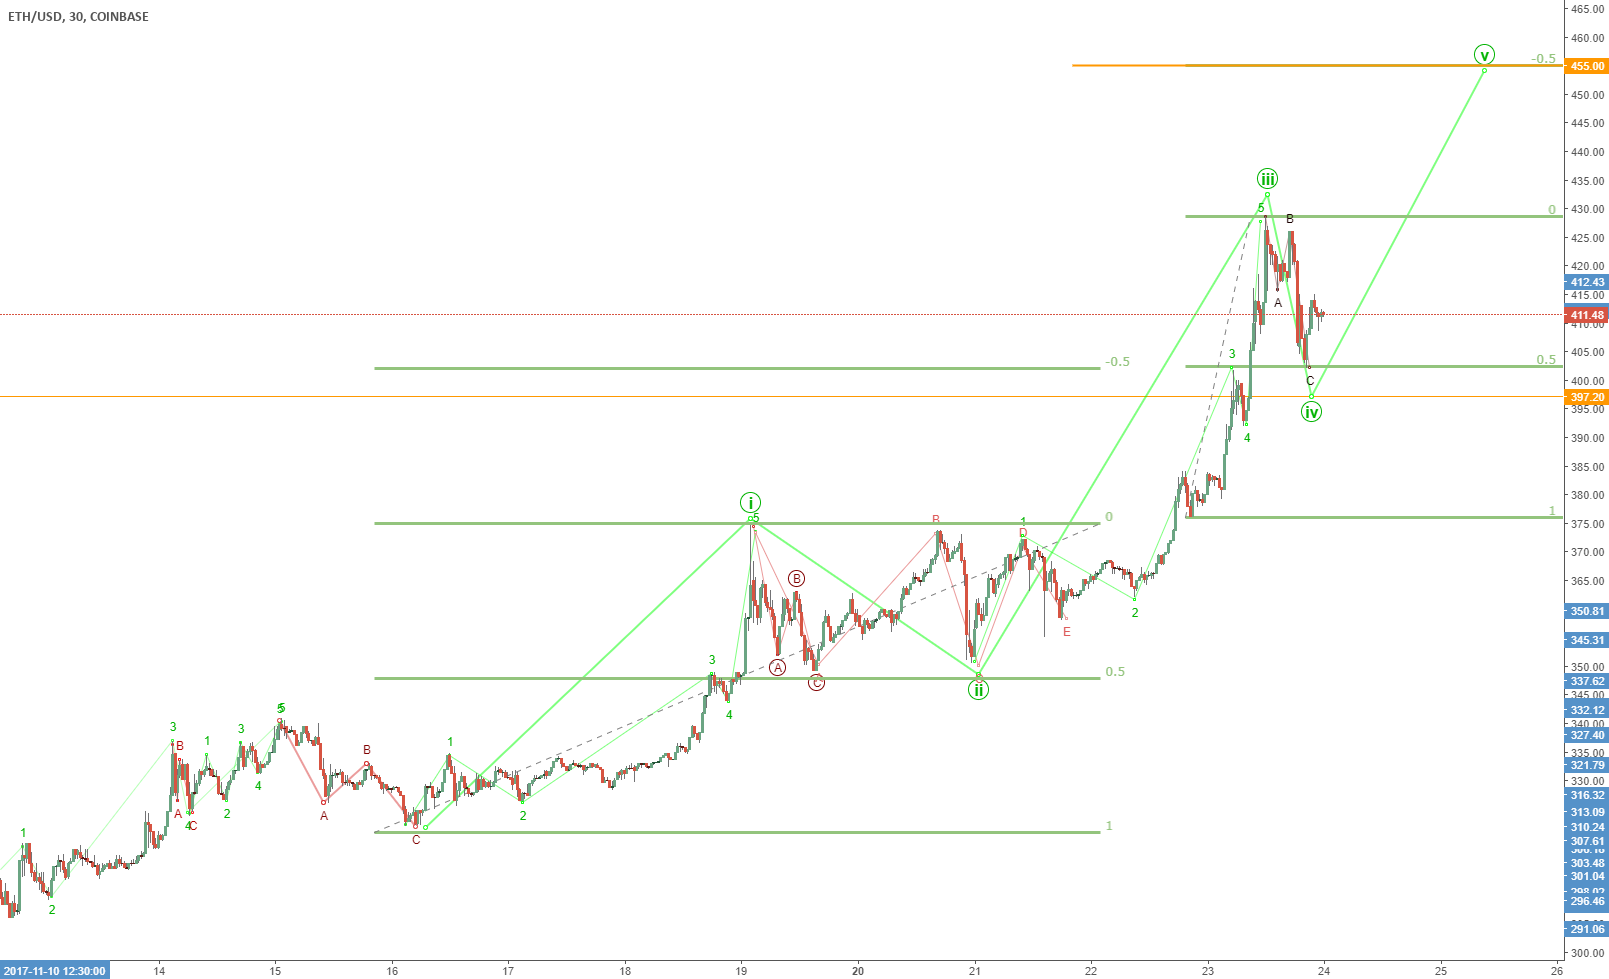 Updated ETH outlook: $455 next stop?